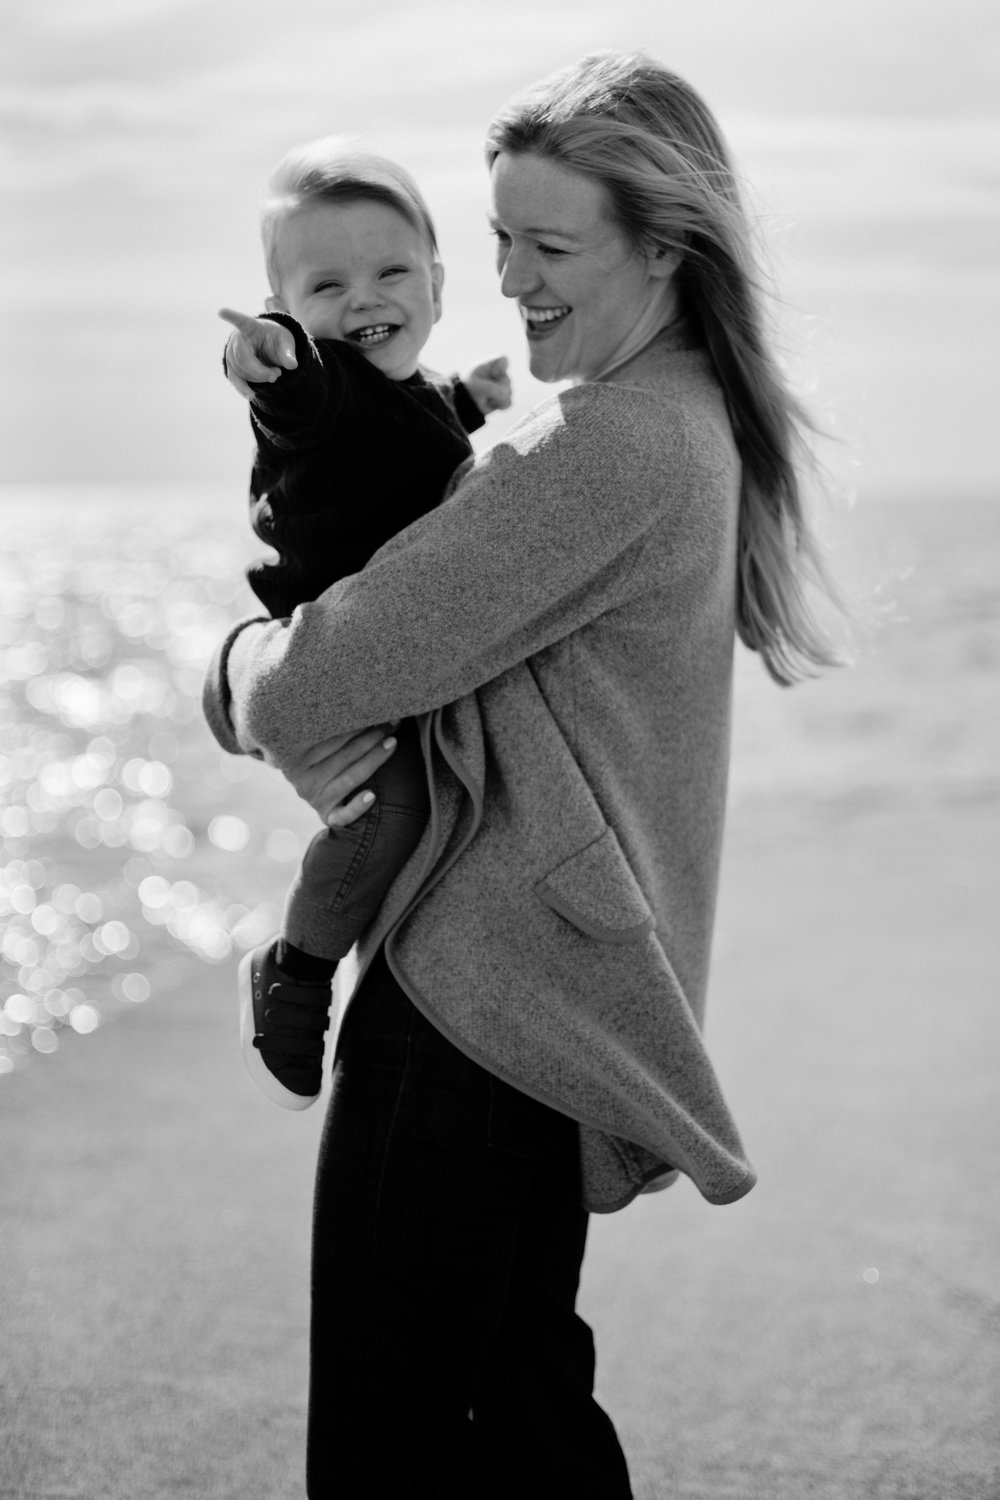 jacquelinemotherhood-36.jpg